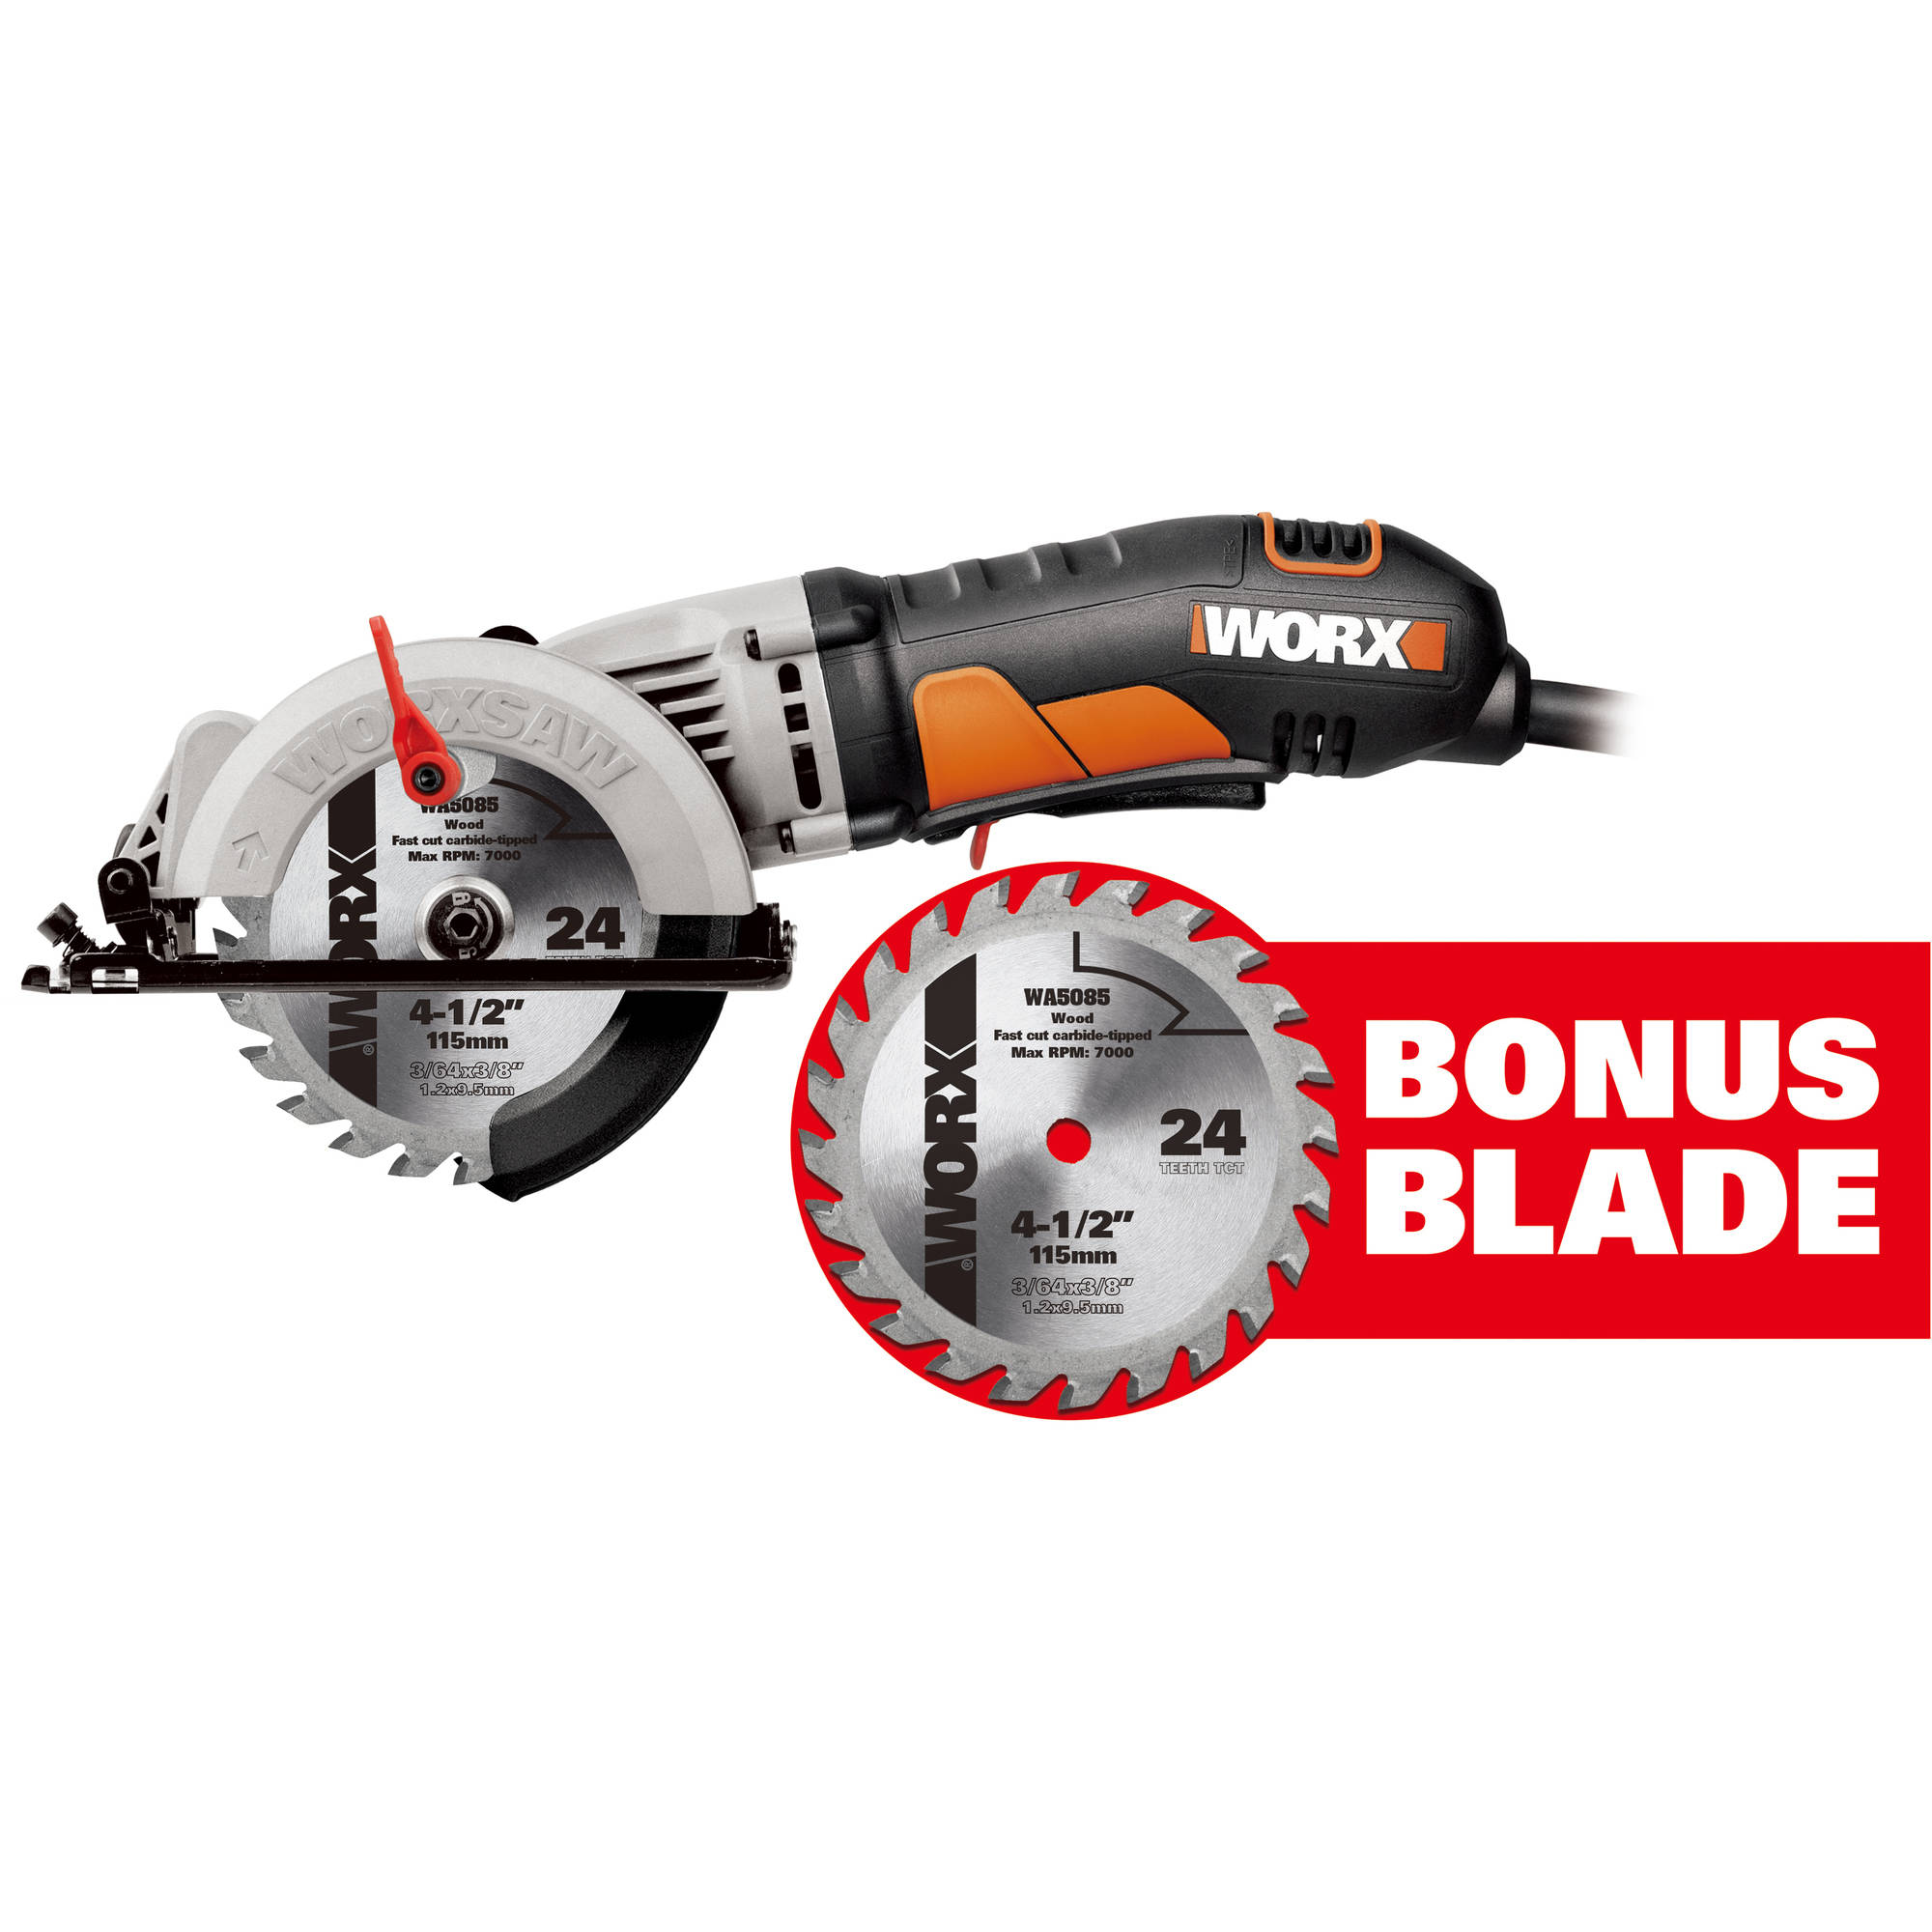 "Worx 4-1 2"" Compact Circular Saw with Bonus Blade by Positec Technology"